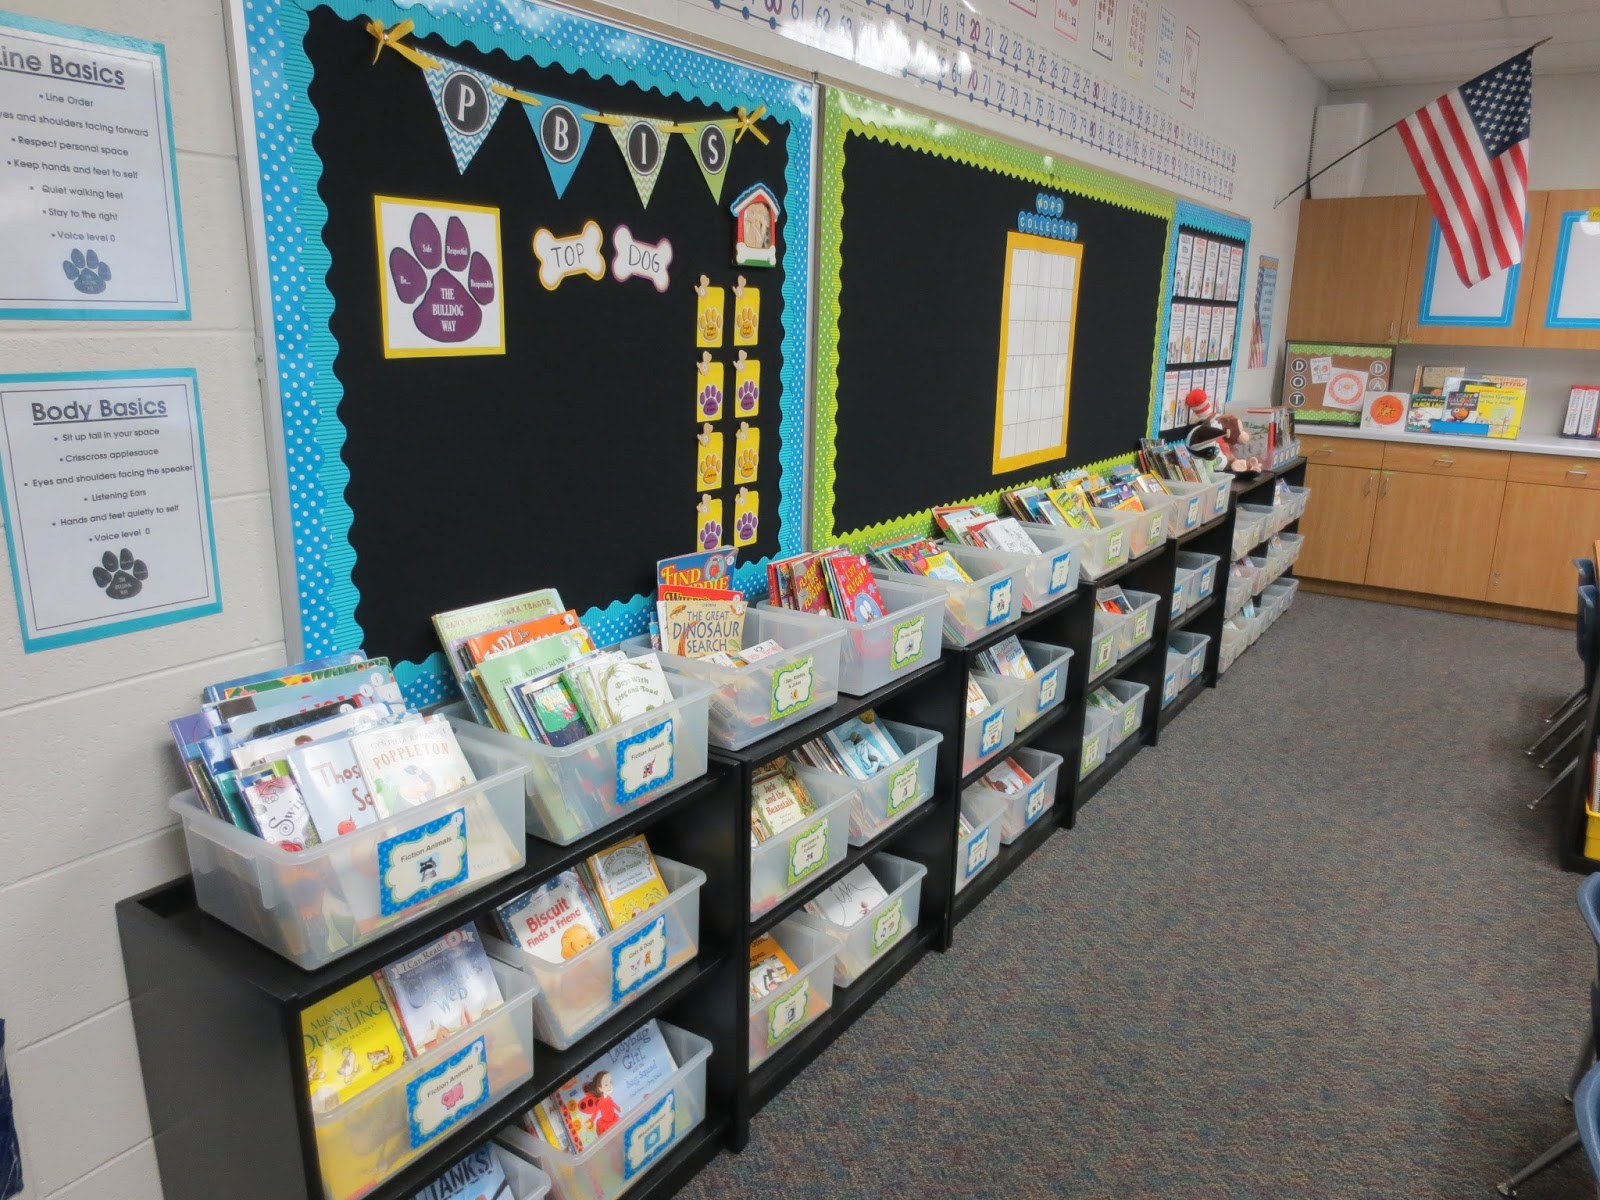 Setting Up For Second Classroom Reveal